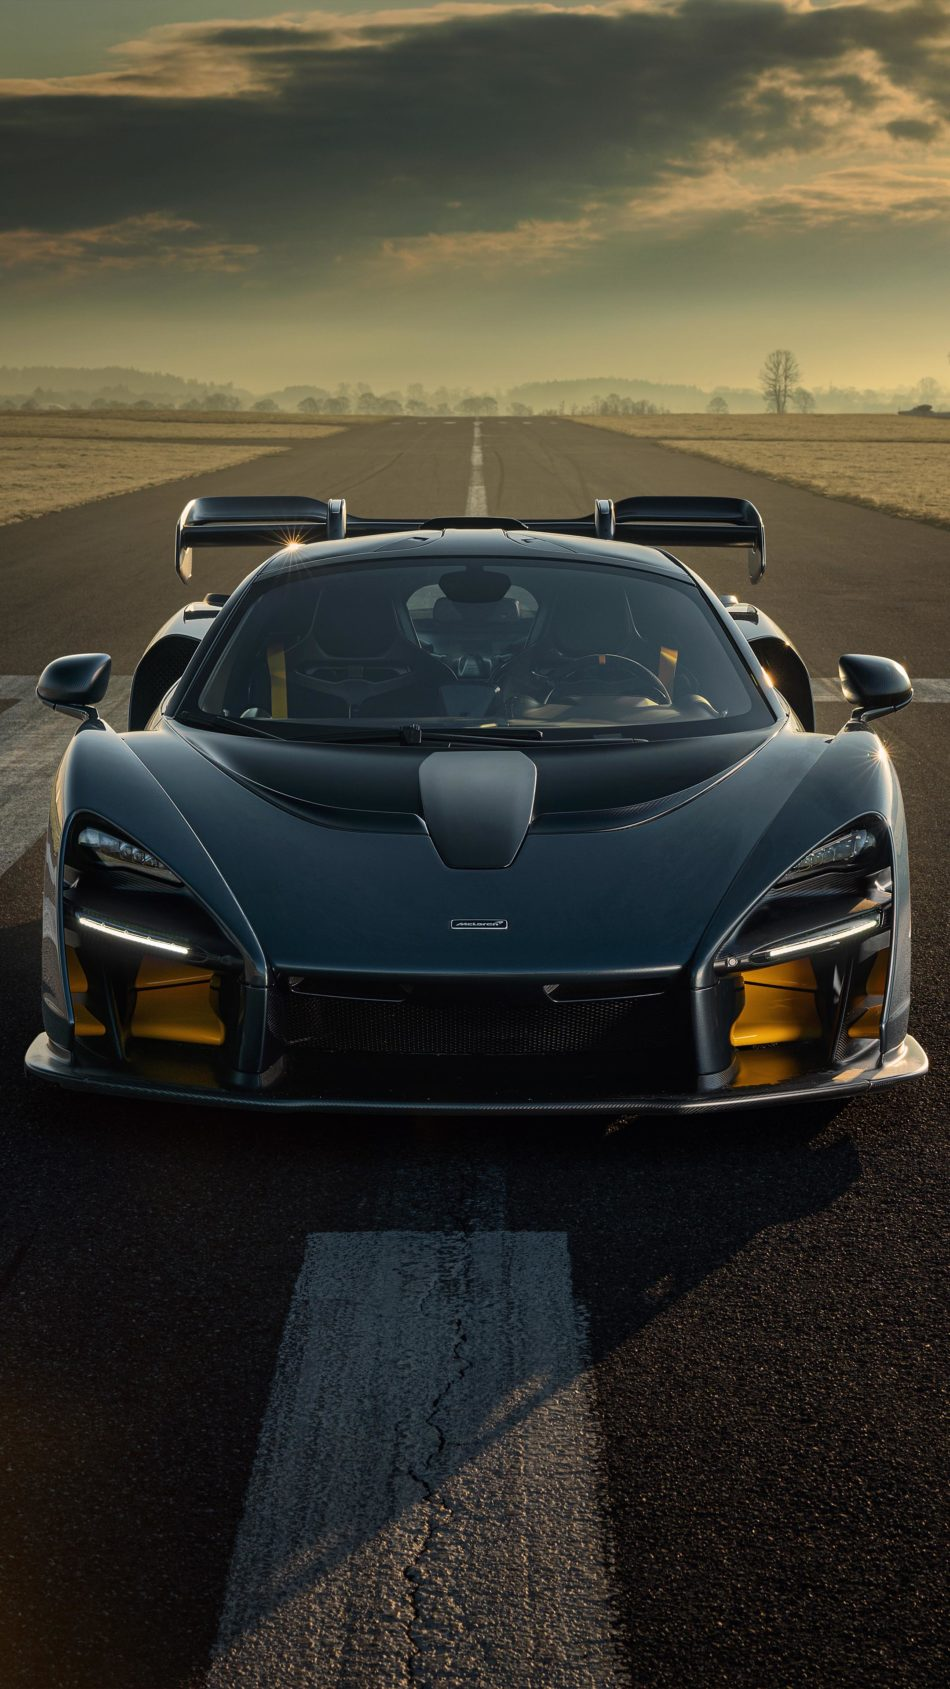 Novitec McLaren Senna 2020 4K Ultra HD Mobile Wallpaper